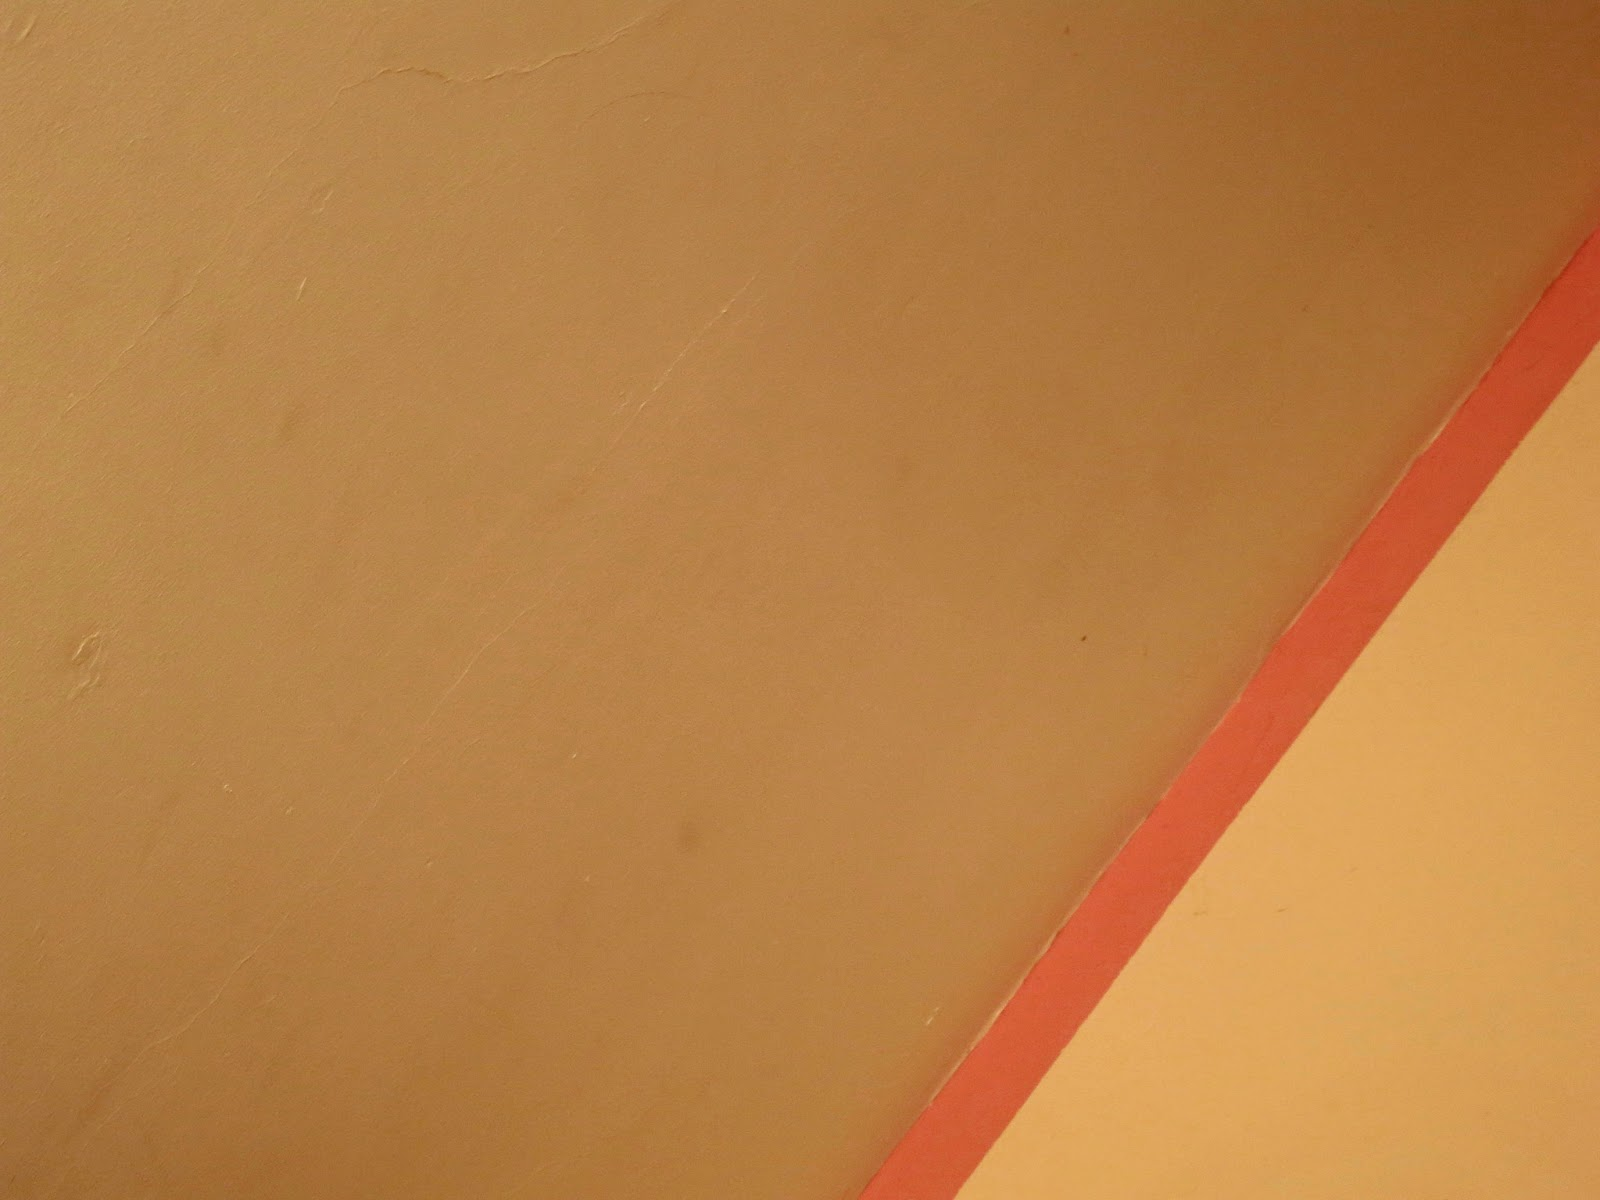 Where the slope of a ceiling meets the wall. Pink paints.